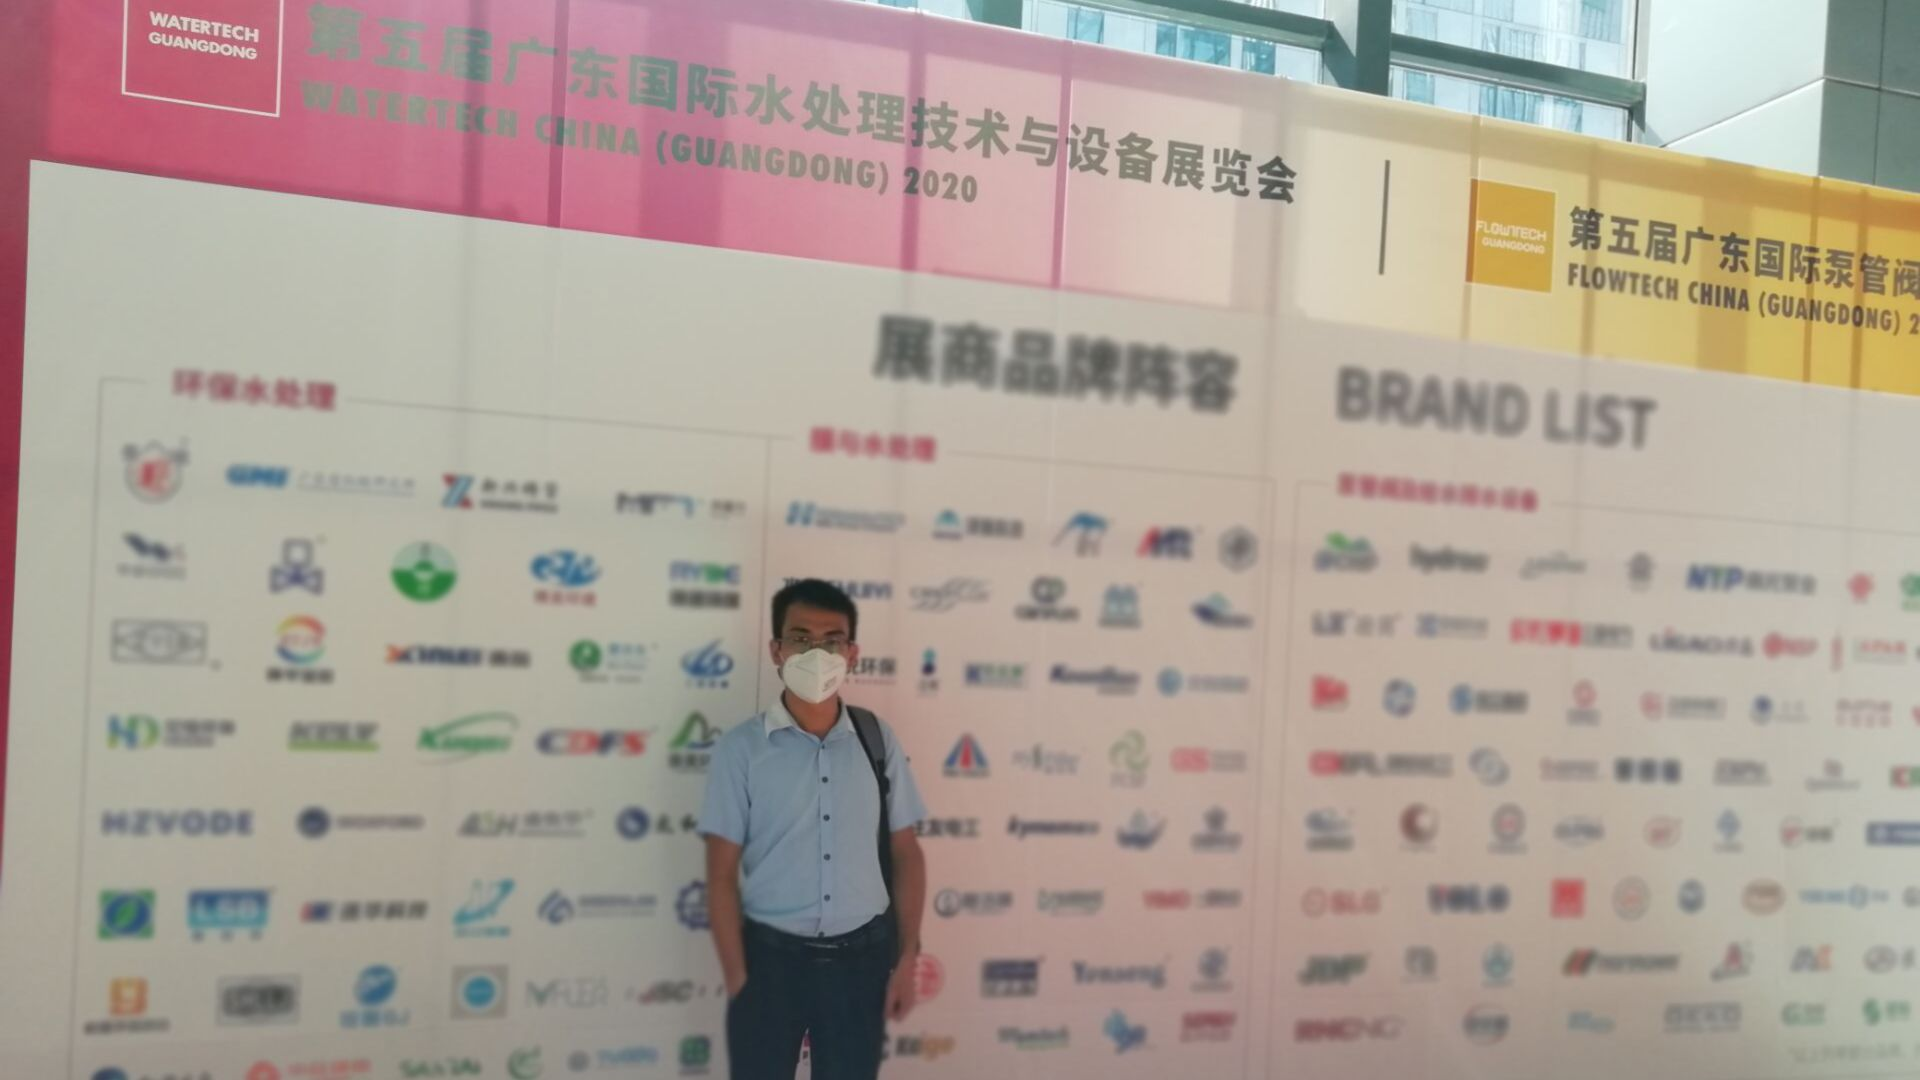 Besoek WATERTECH CHINA (GUANGDONG) 2020 op 15 Julie 2020